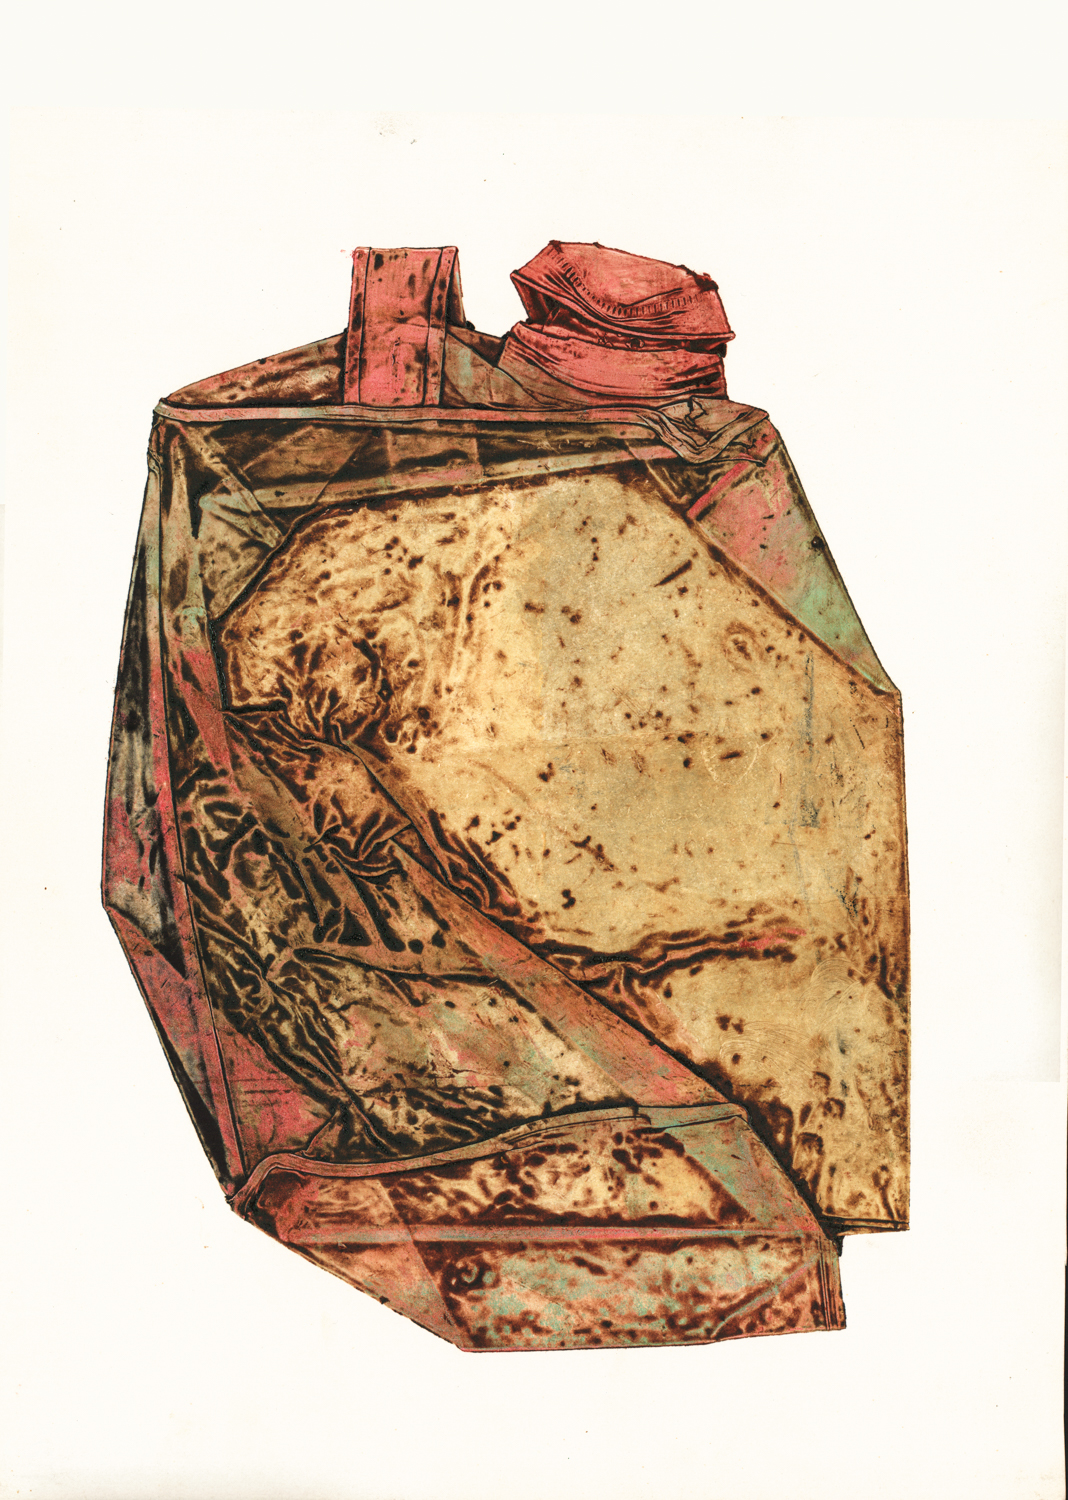 Untitled (Gas Can) - Collagraph - 16